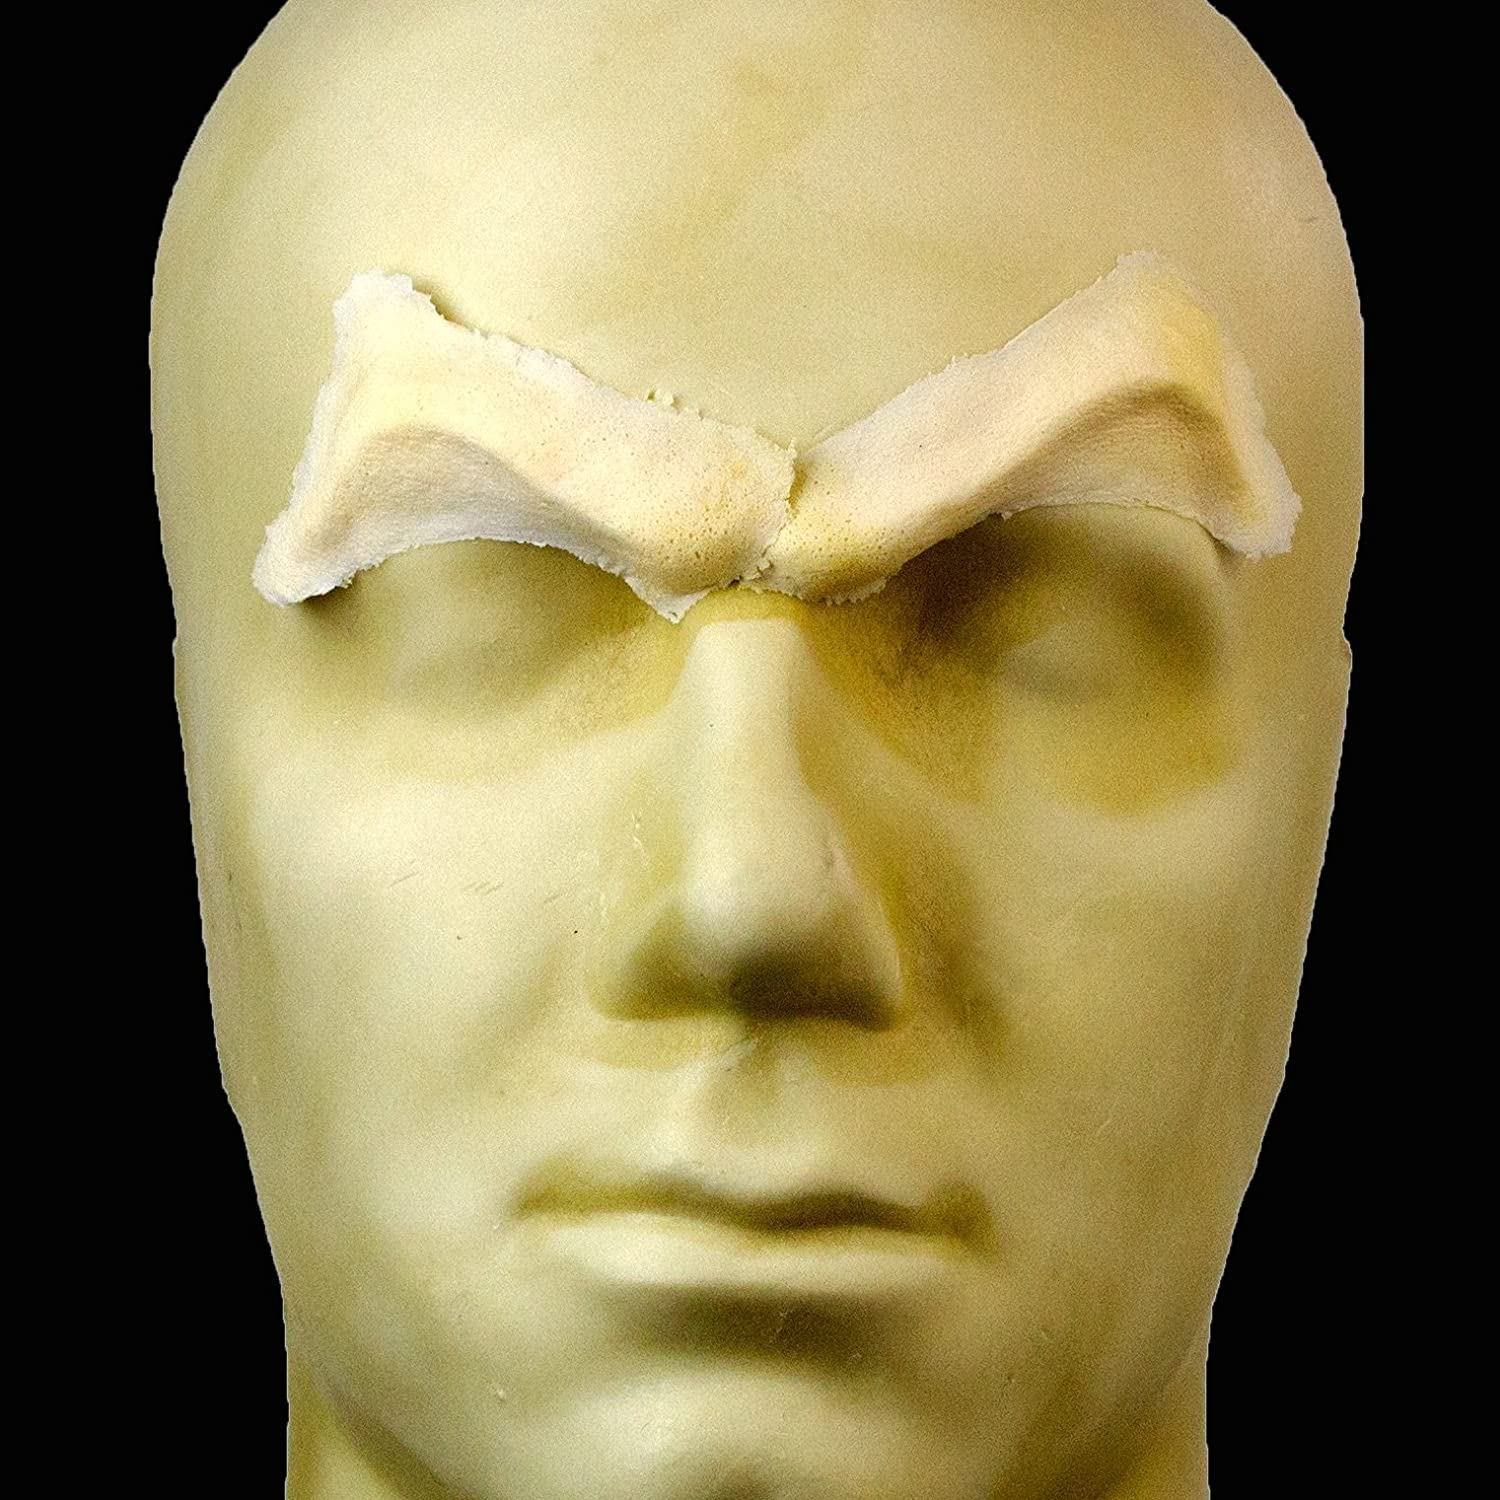 Makeup and Theater FX Rubber Wear Foam Latex Prosthetic Caveman Forehead FRW-043